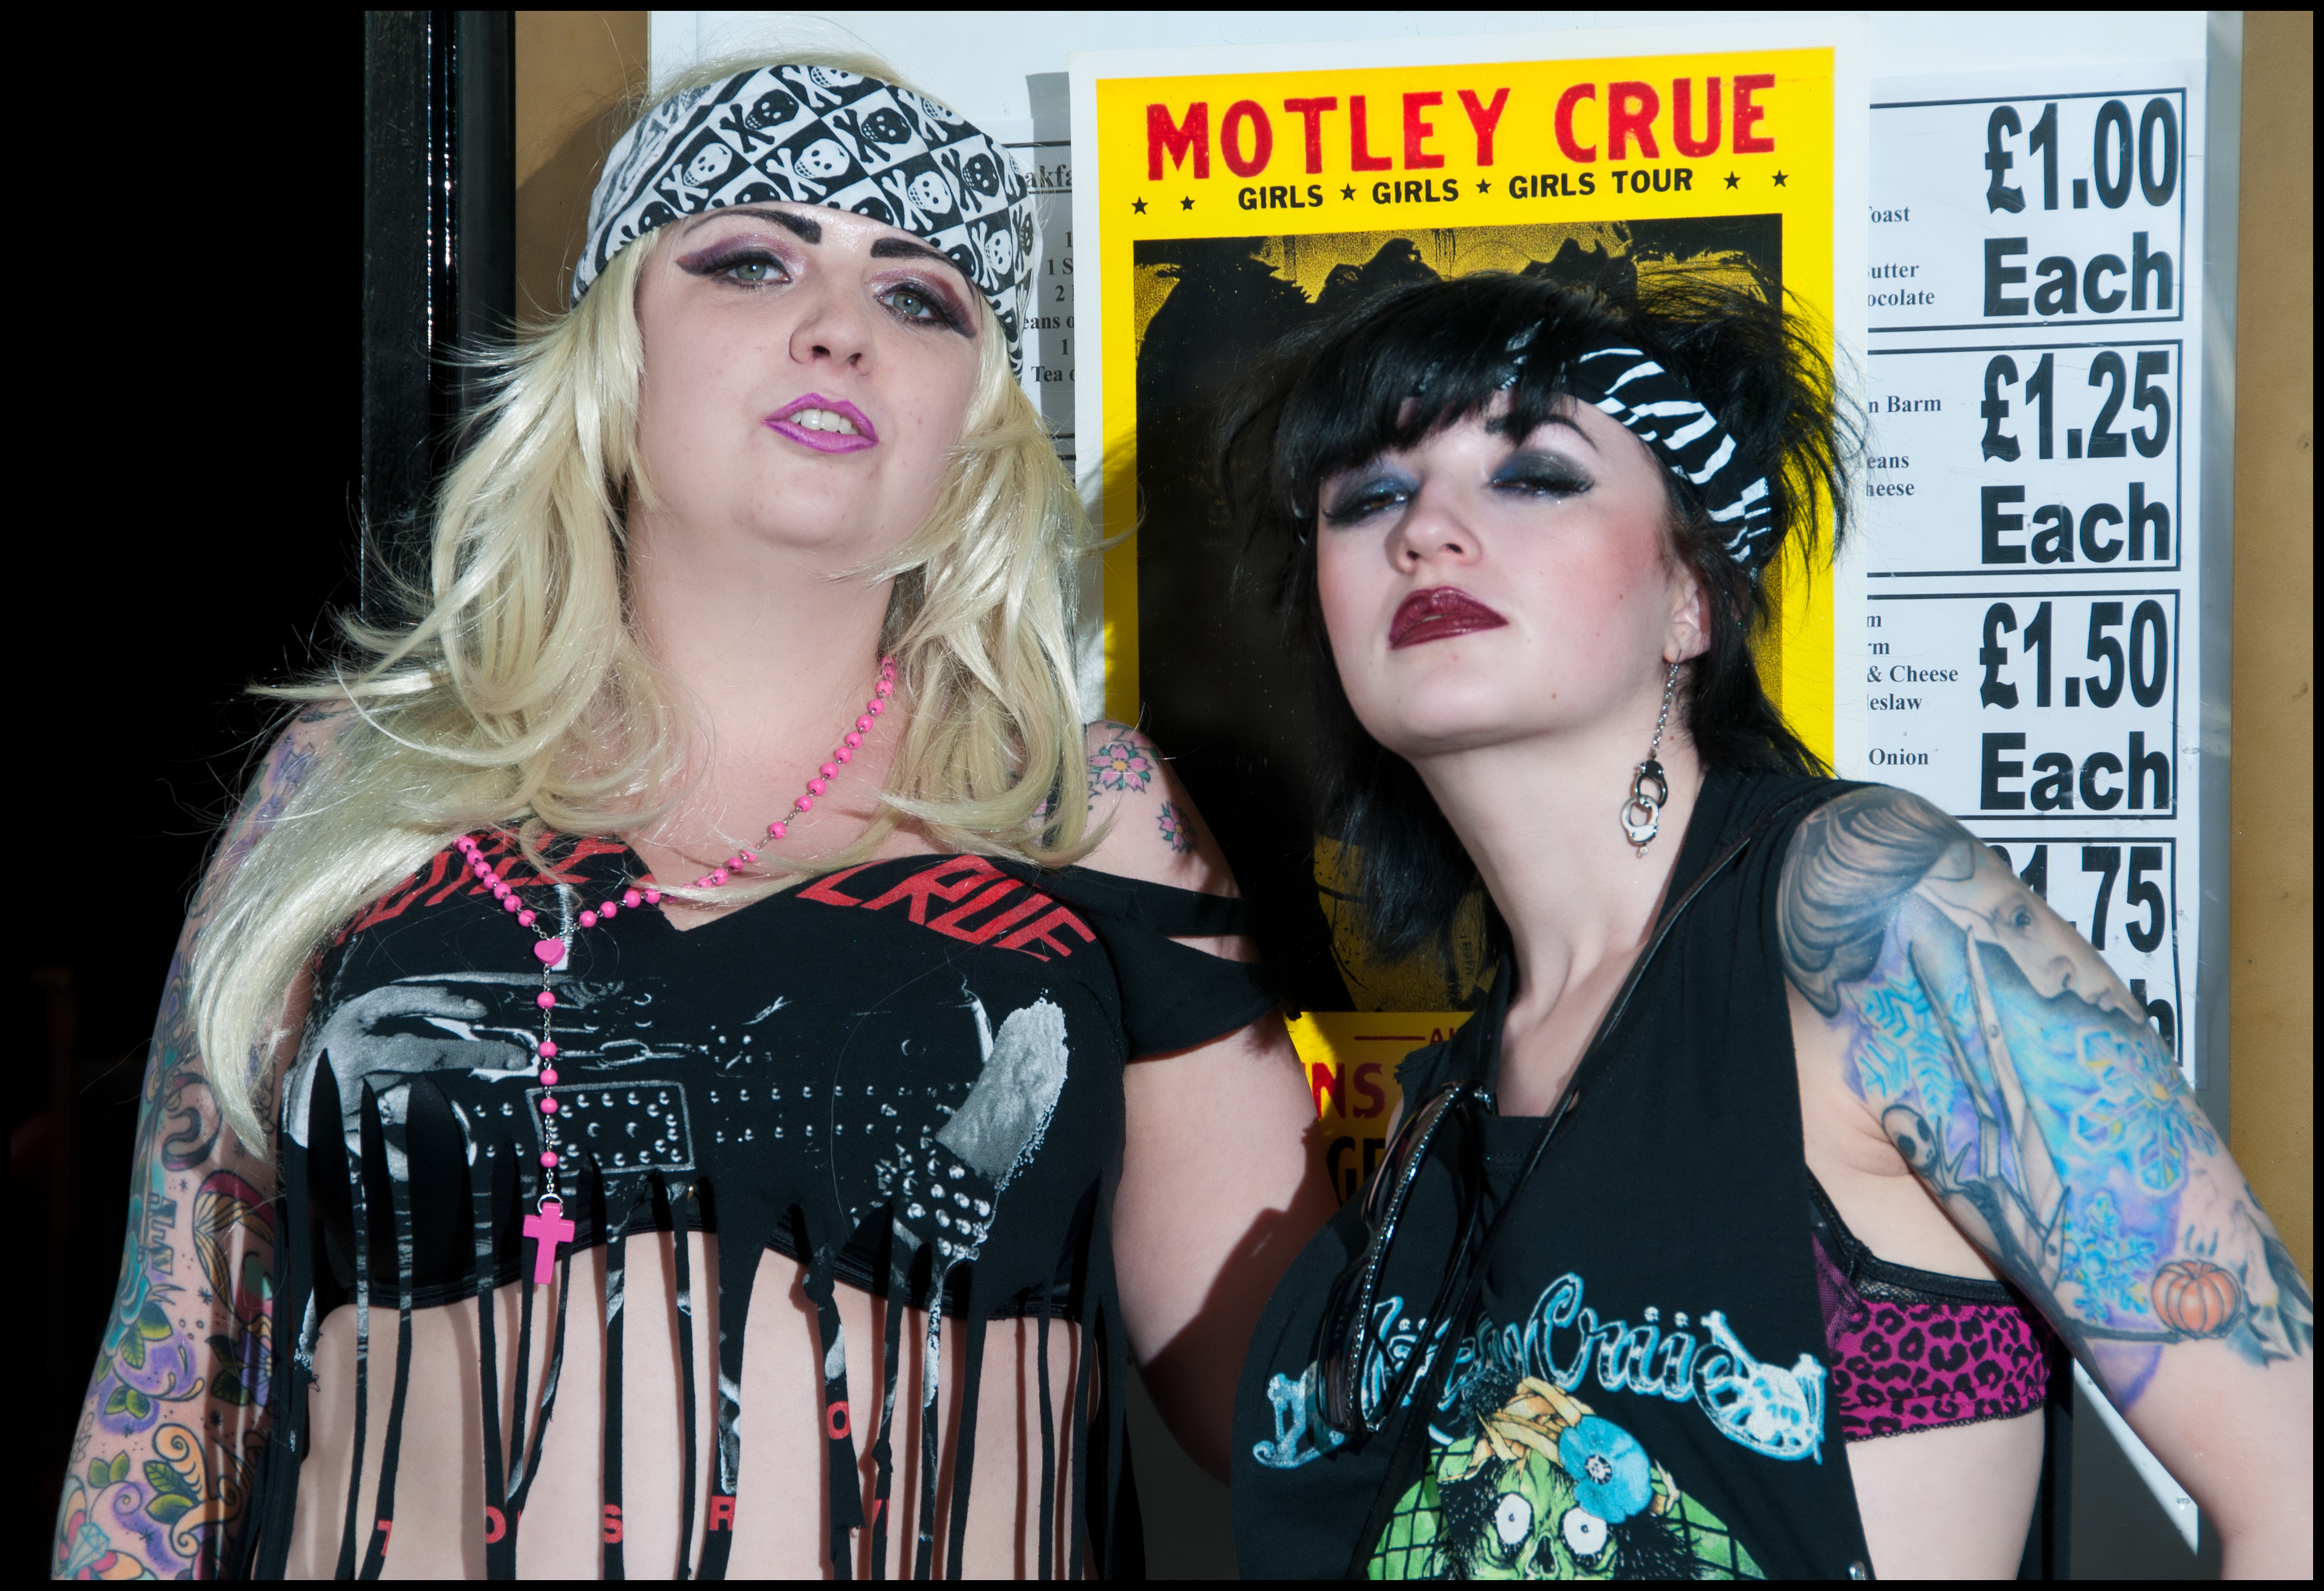 ... here's me and the awesome Kitty Liquor being 80's Crue groupies